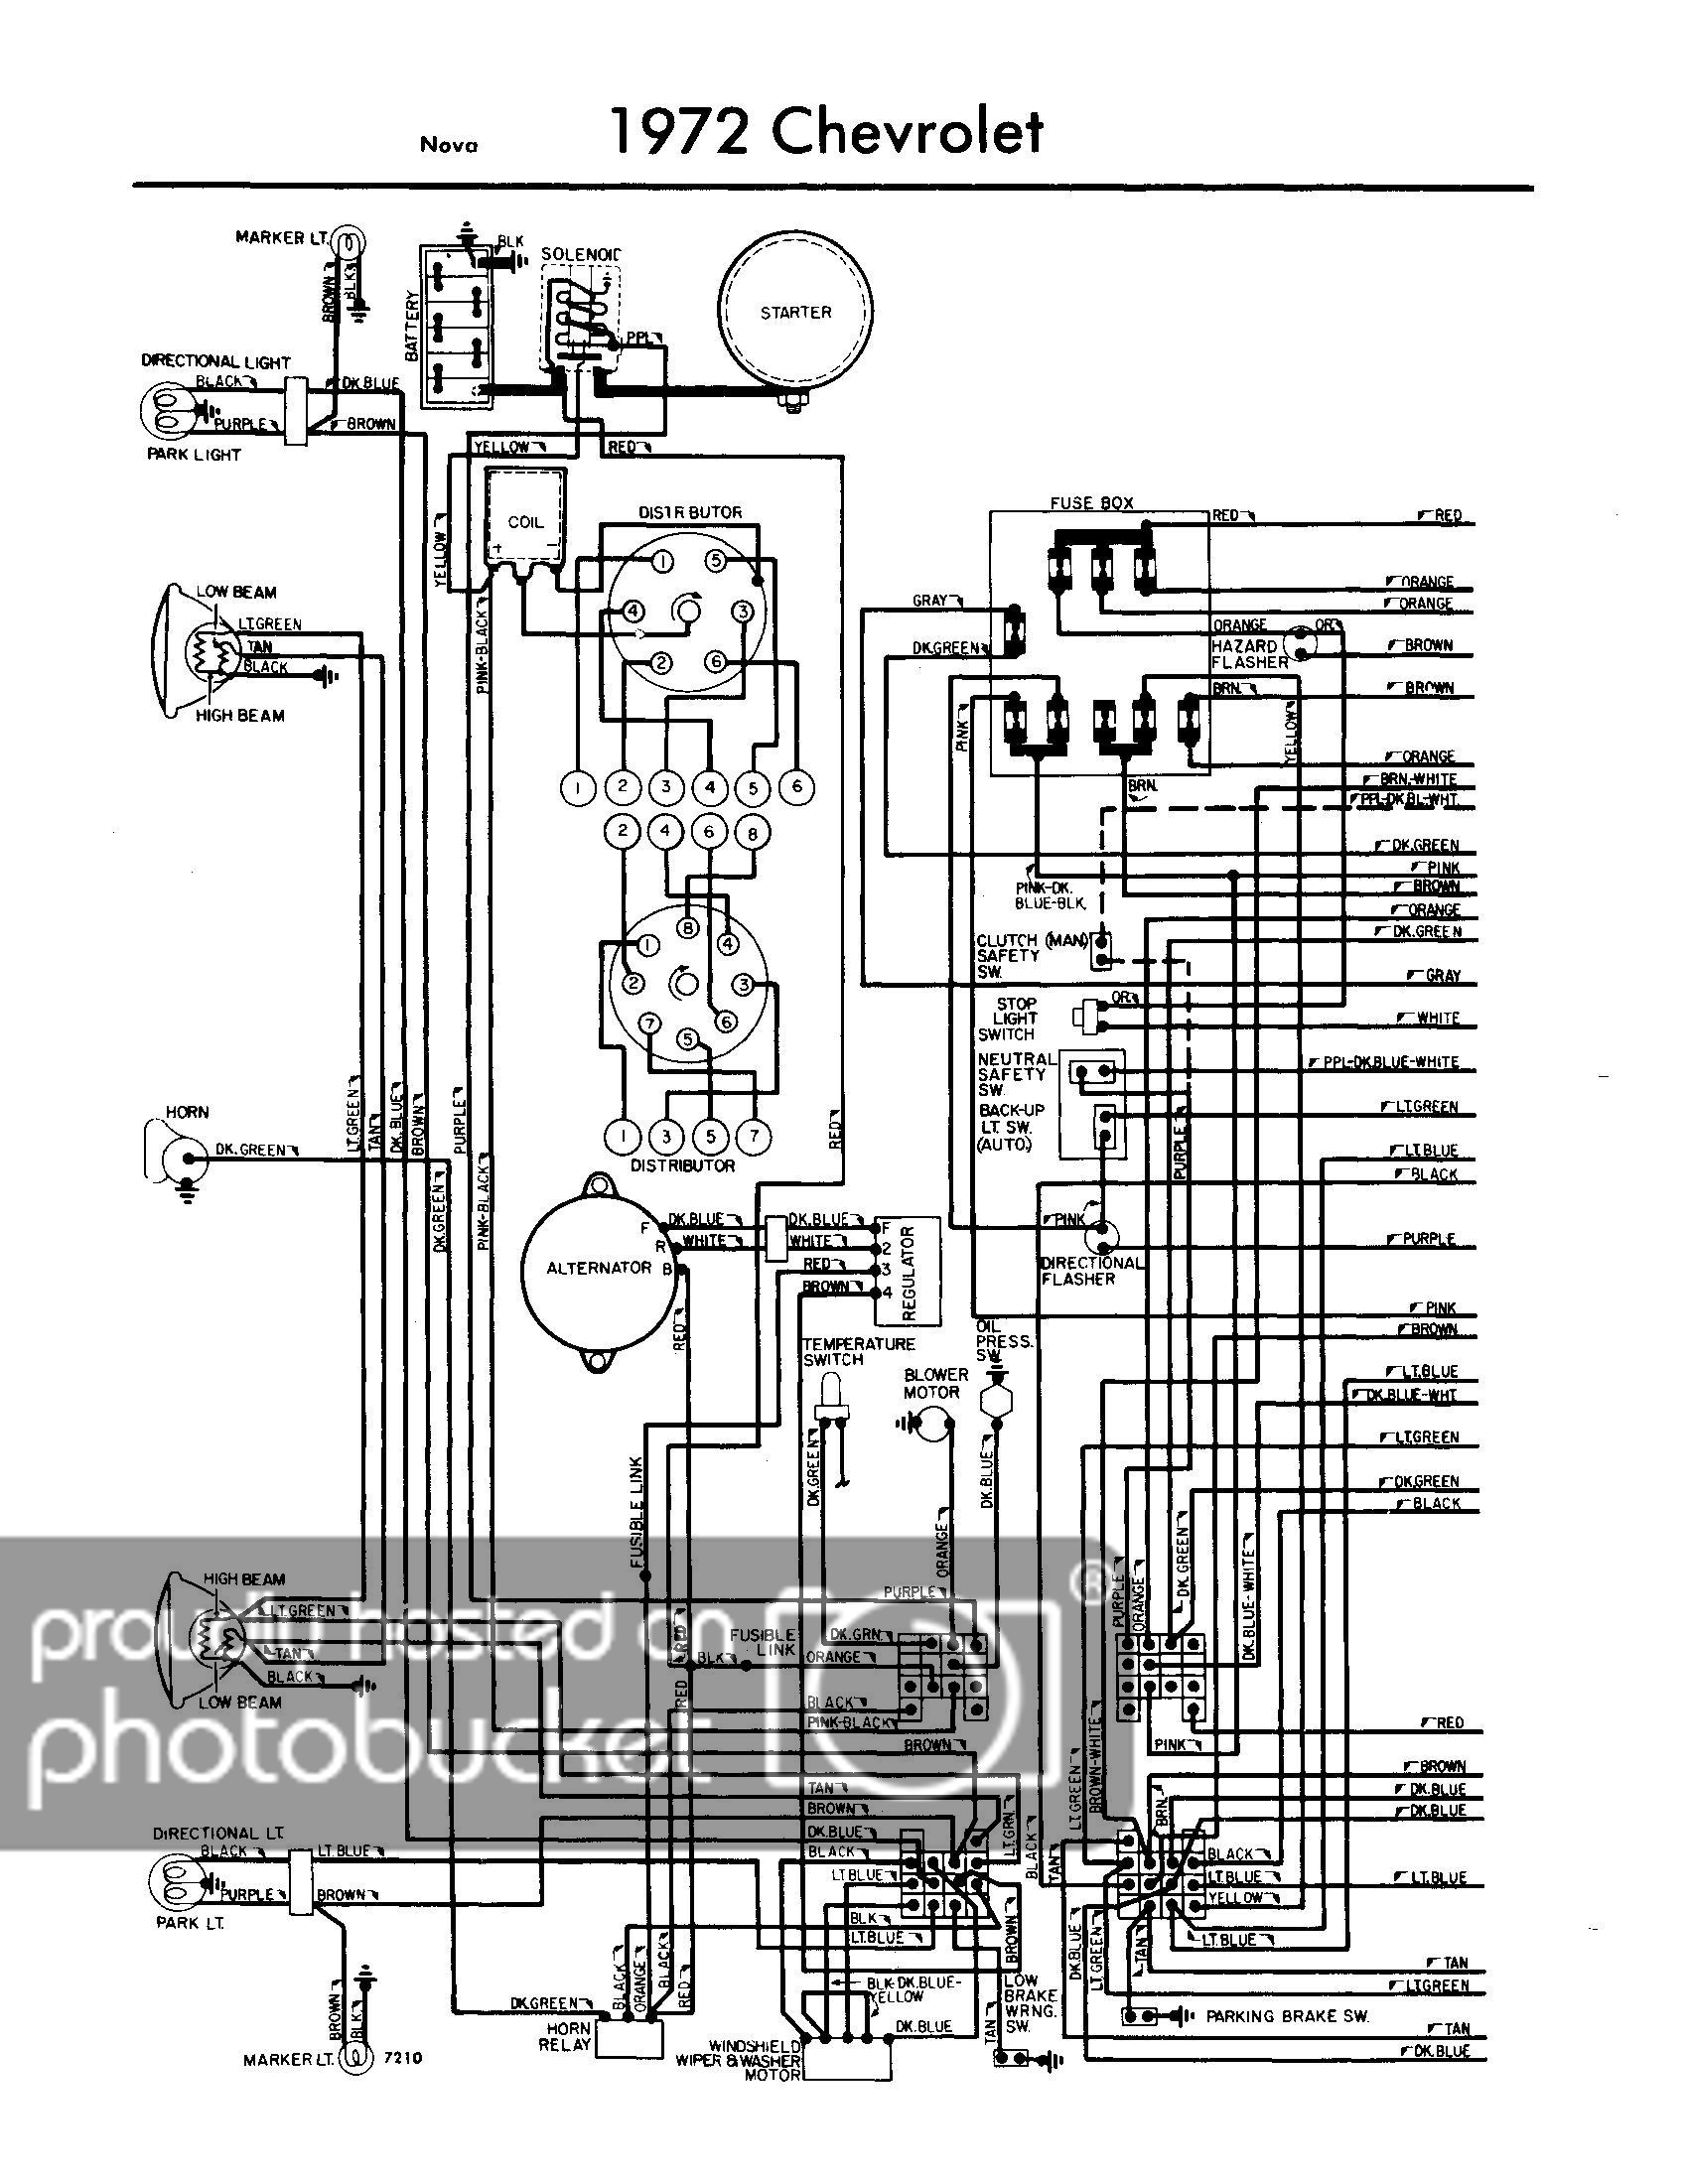 Ford F100 Fuse Box | Wiring Library - Start Run Capacitor Wiring Diagram